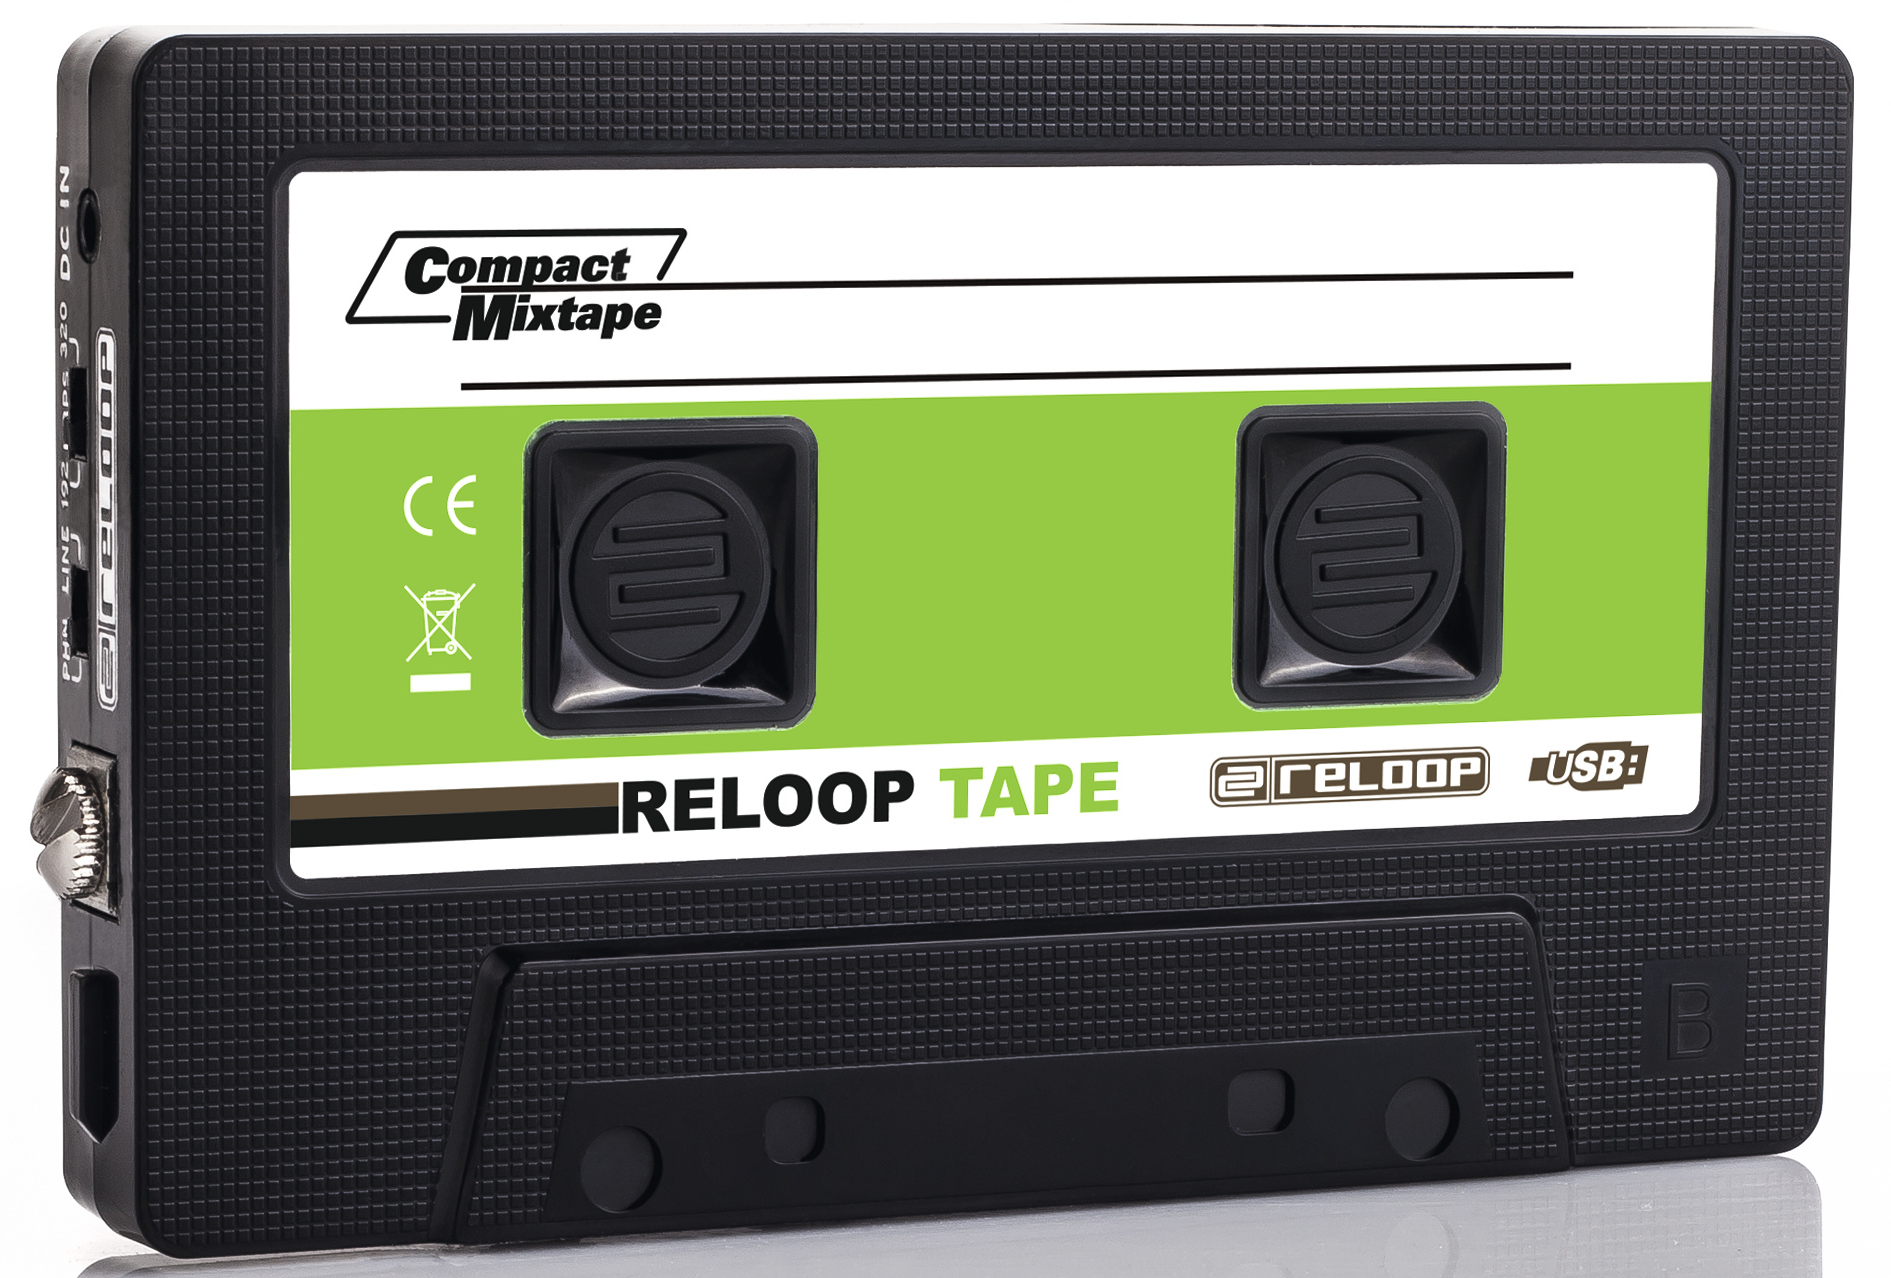 The fun-looking Reloop Tape lets you record your mixes direct to MP3 for easy sharing or uploading.